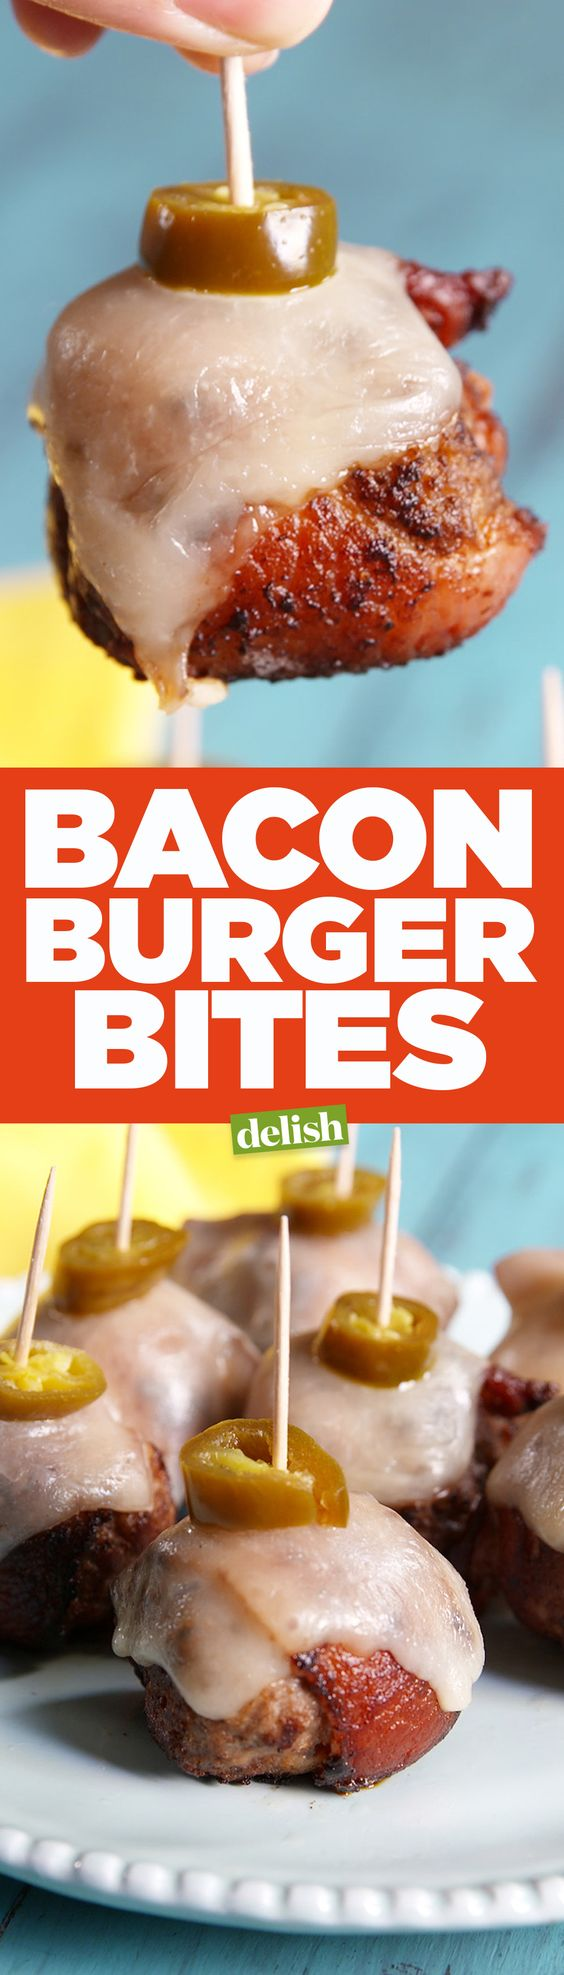 Bacon Burger Bites are the low-carb game day app your party desperately needs. Get the recipe from Delish.com.: